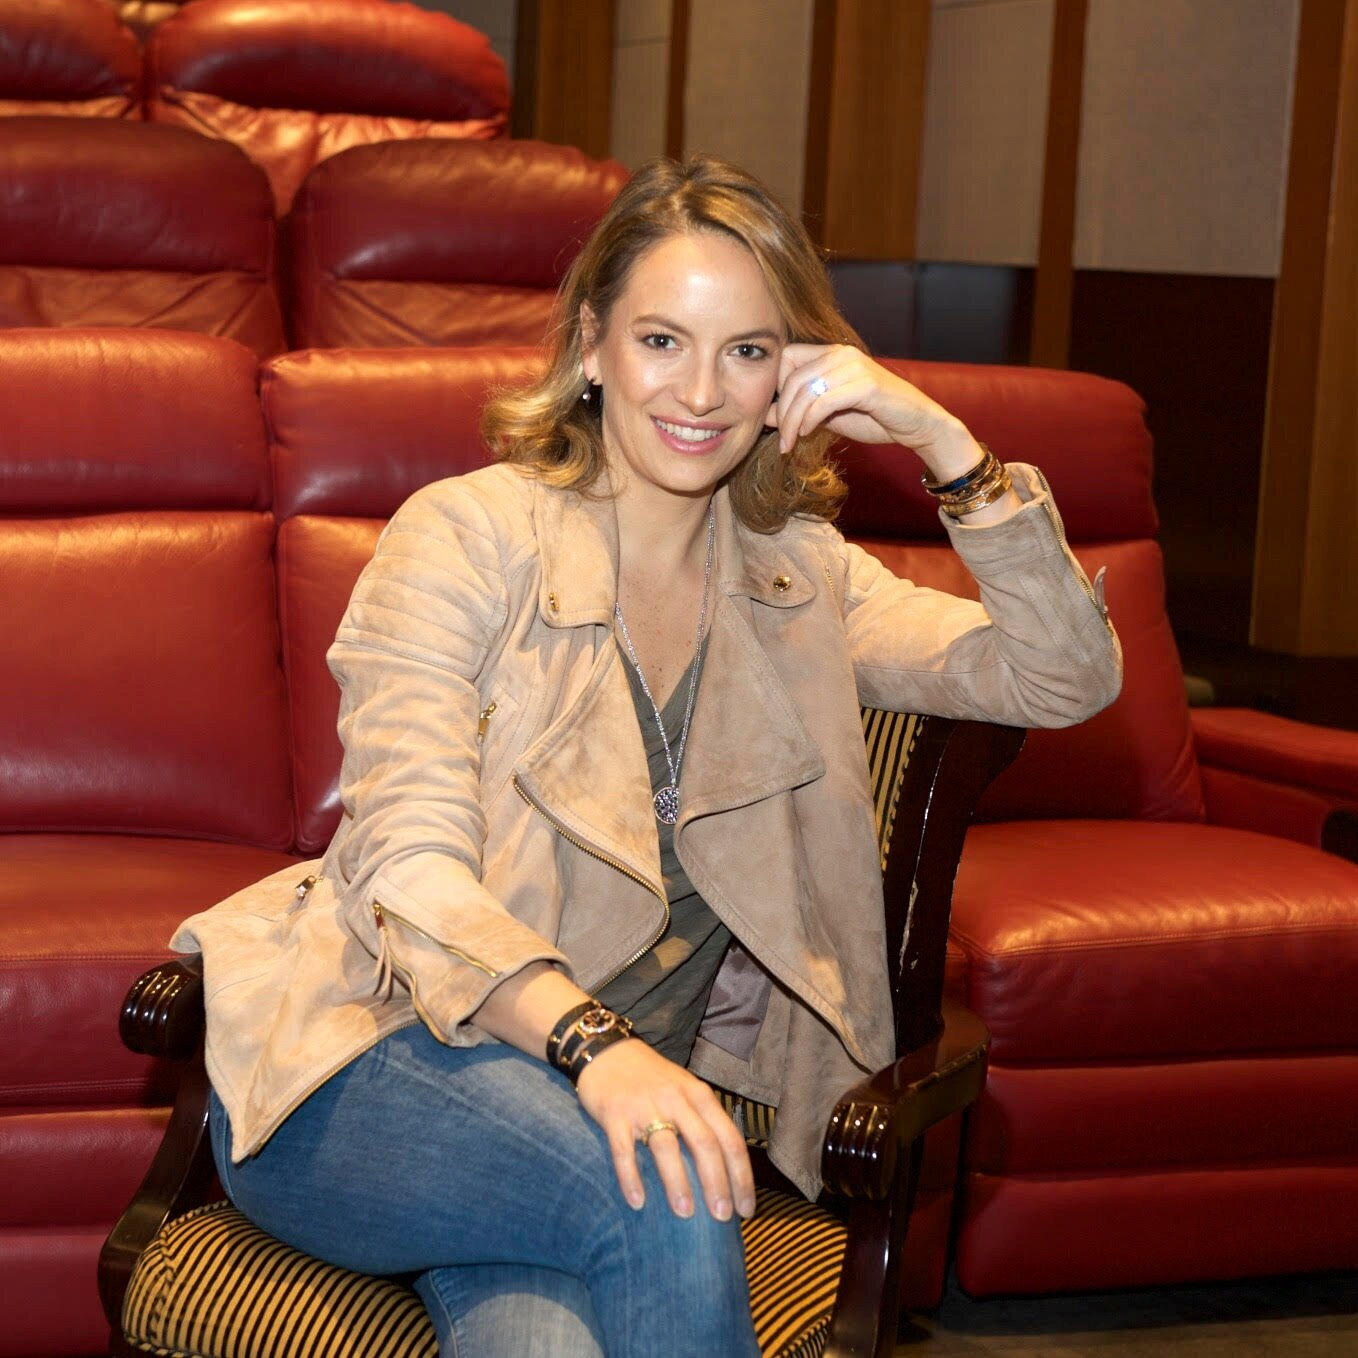 """Coralie Charriol (EXECUTIVE PRODUCER)  daughter of Philippe Charriol, is currently Vice President and Creative Director for jewelry and leather goods at CHARRIOL, the Swiss luxury marquee created by her father in 1983. Coralie lives in New York City with her husband and 3 young children. She was born in Hawaii and has since lived in Hong Kong, Geneva, London, Paris, and Boston. She speaks 5 languages and loves to travel as much as possible. To date, she has designed nearly 100 different collections of leather goods and jewelry for her family's business. If this wasn't enough, she started a nonprofit called REACT to FILM with her husband which engages in research and curriculum development for Middle and High Schools, providing them with educational resources and support for courses on social issues through documentary films. REACT to FILM allows schools to educate on a spectrum of social ailments from the psychosocial effects of war on nutrition, gun policy to gender inequity, conflict mediation to homelessness. Their goal is to promote social responsibility and spark civic engagement. This Spring, Coralie will be honored by the French American Fund for her outstanding contributions through React to Film towards educating and improving the lives of young adults and children. The award will be called """"children come first"""" and her organization, React to Film, is celebrating its 10 year anniversary this year."""